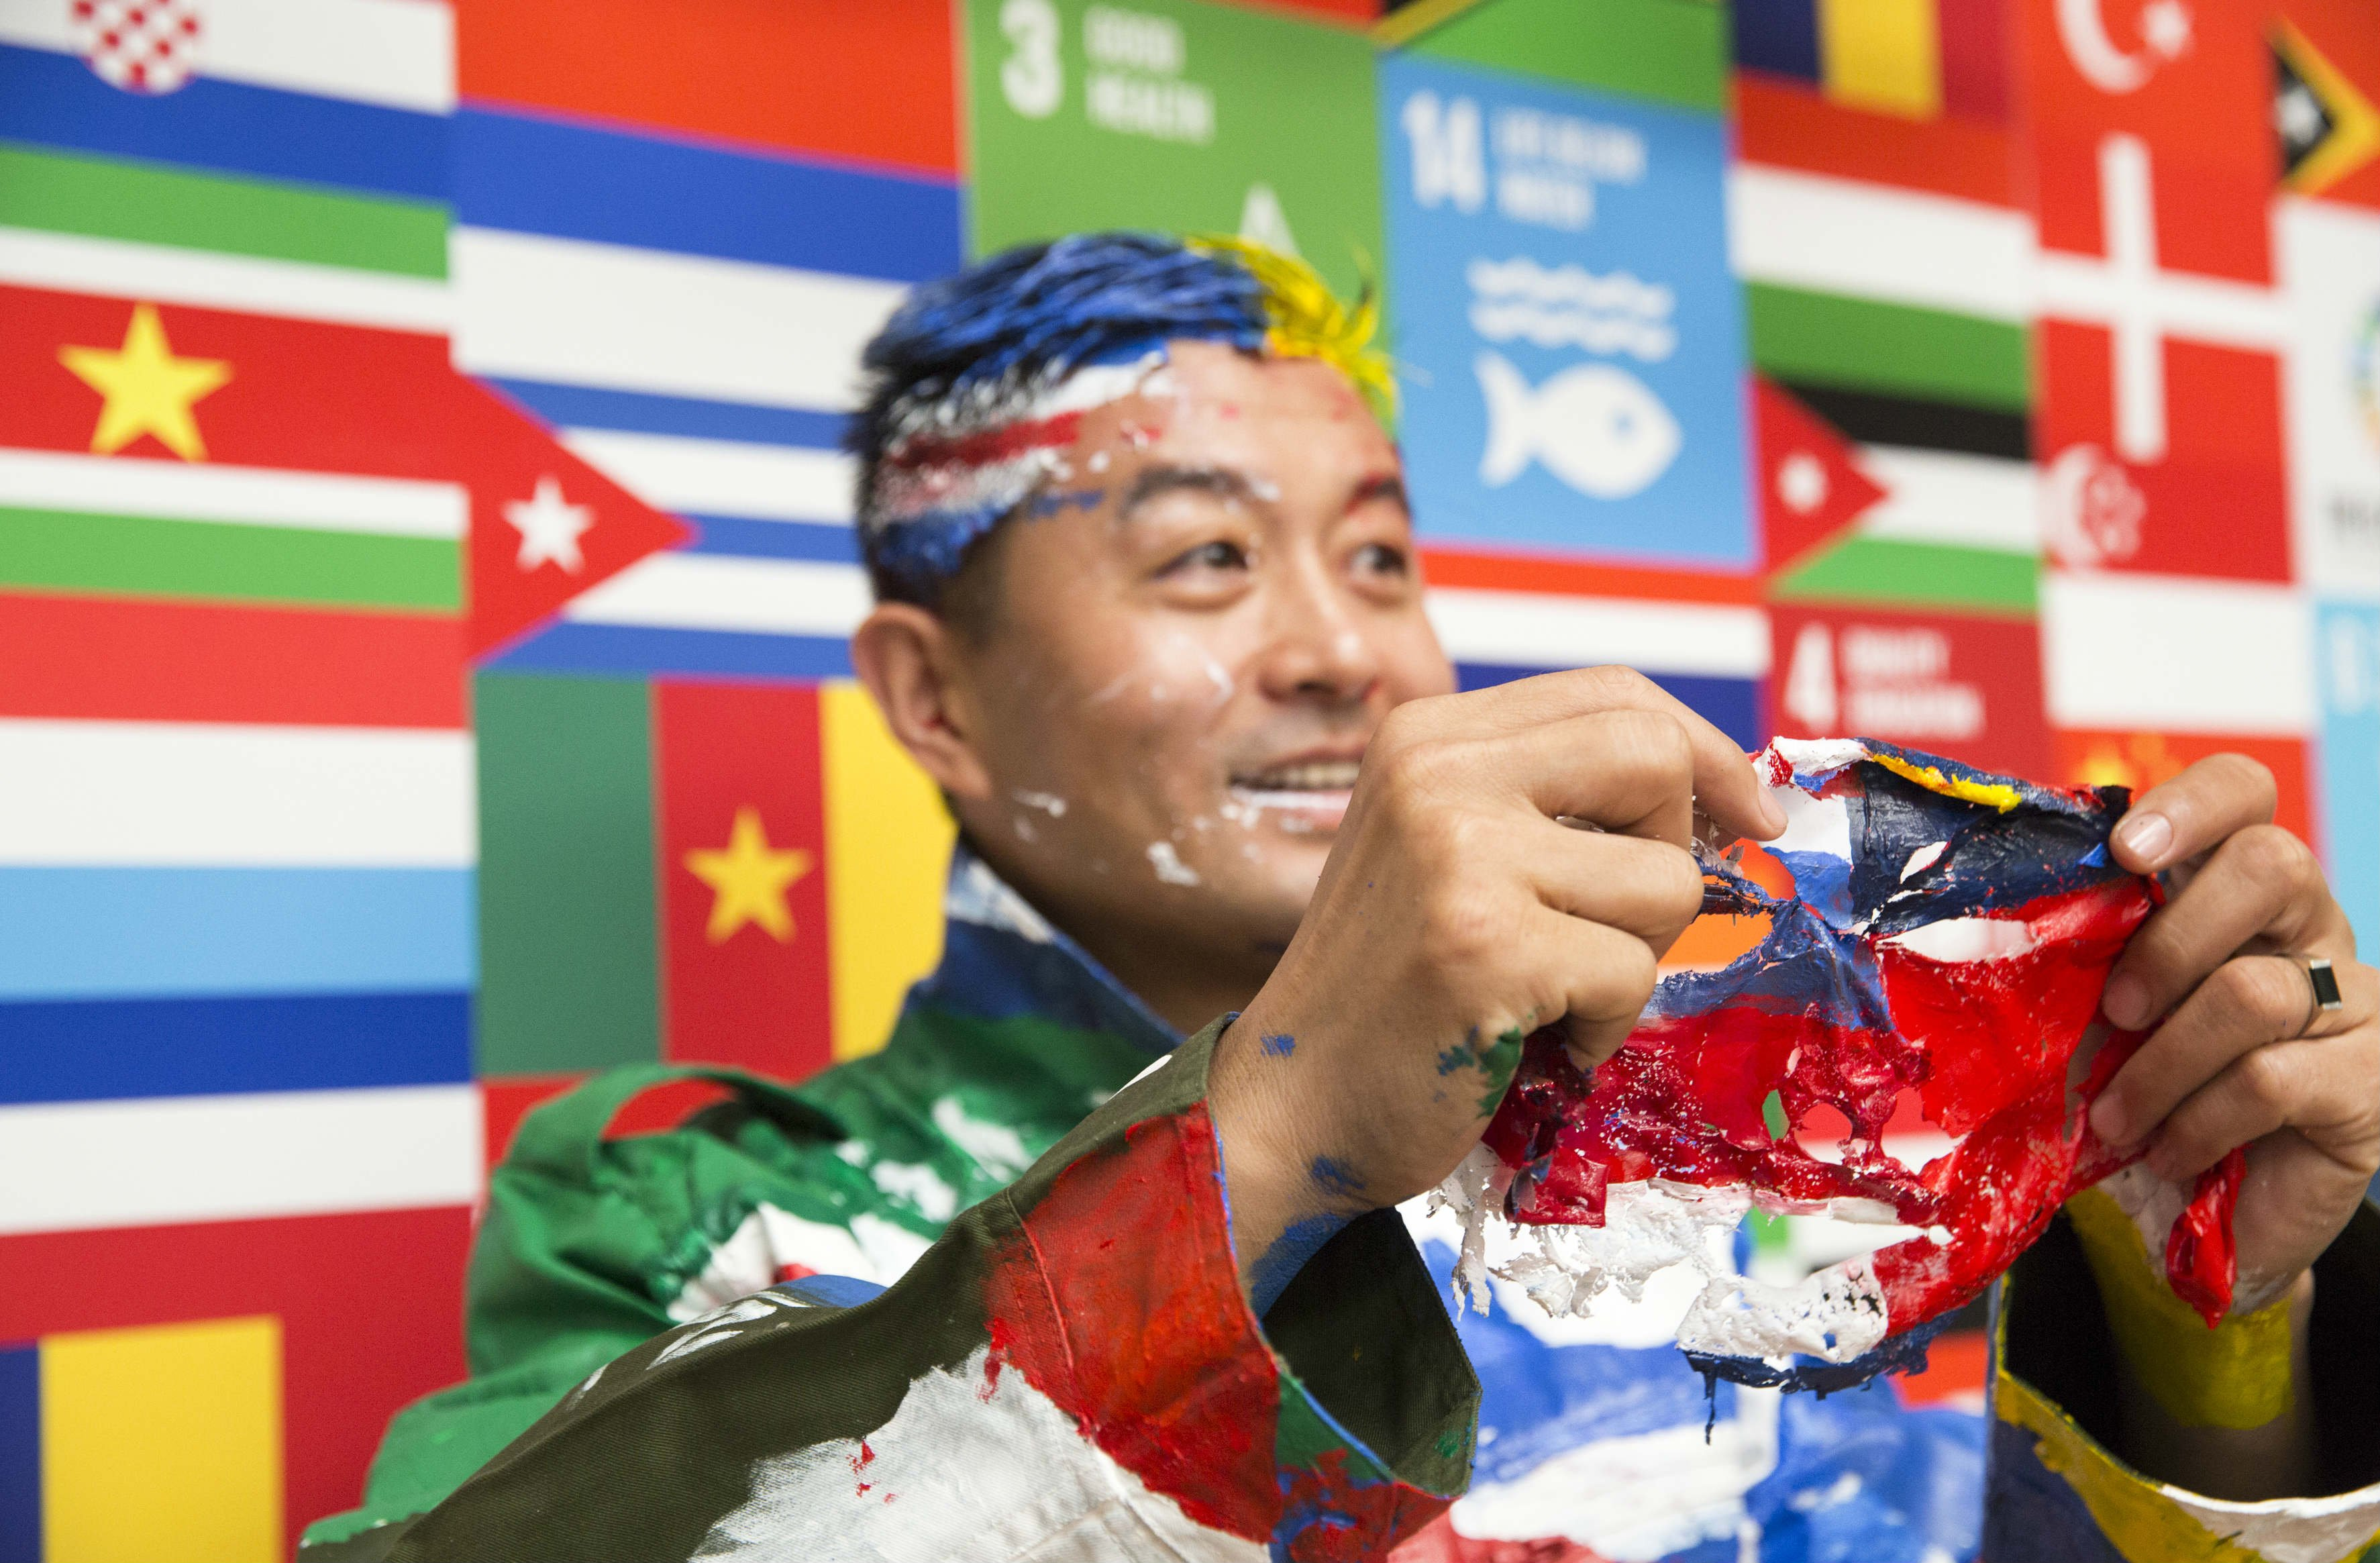 7-billion-people-in-7-days-the-global-goals-BODY-Chinese Artist 2.jpg